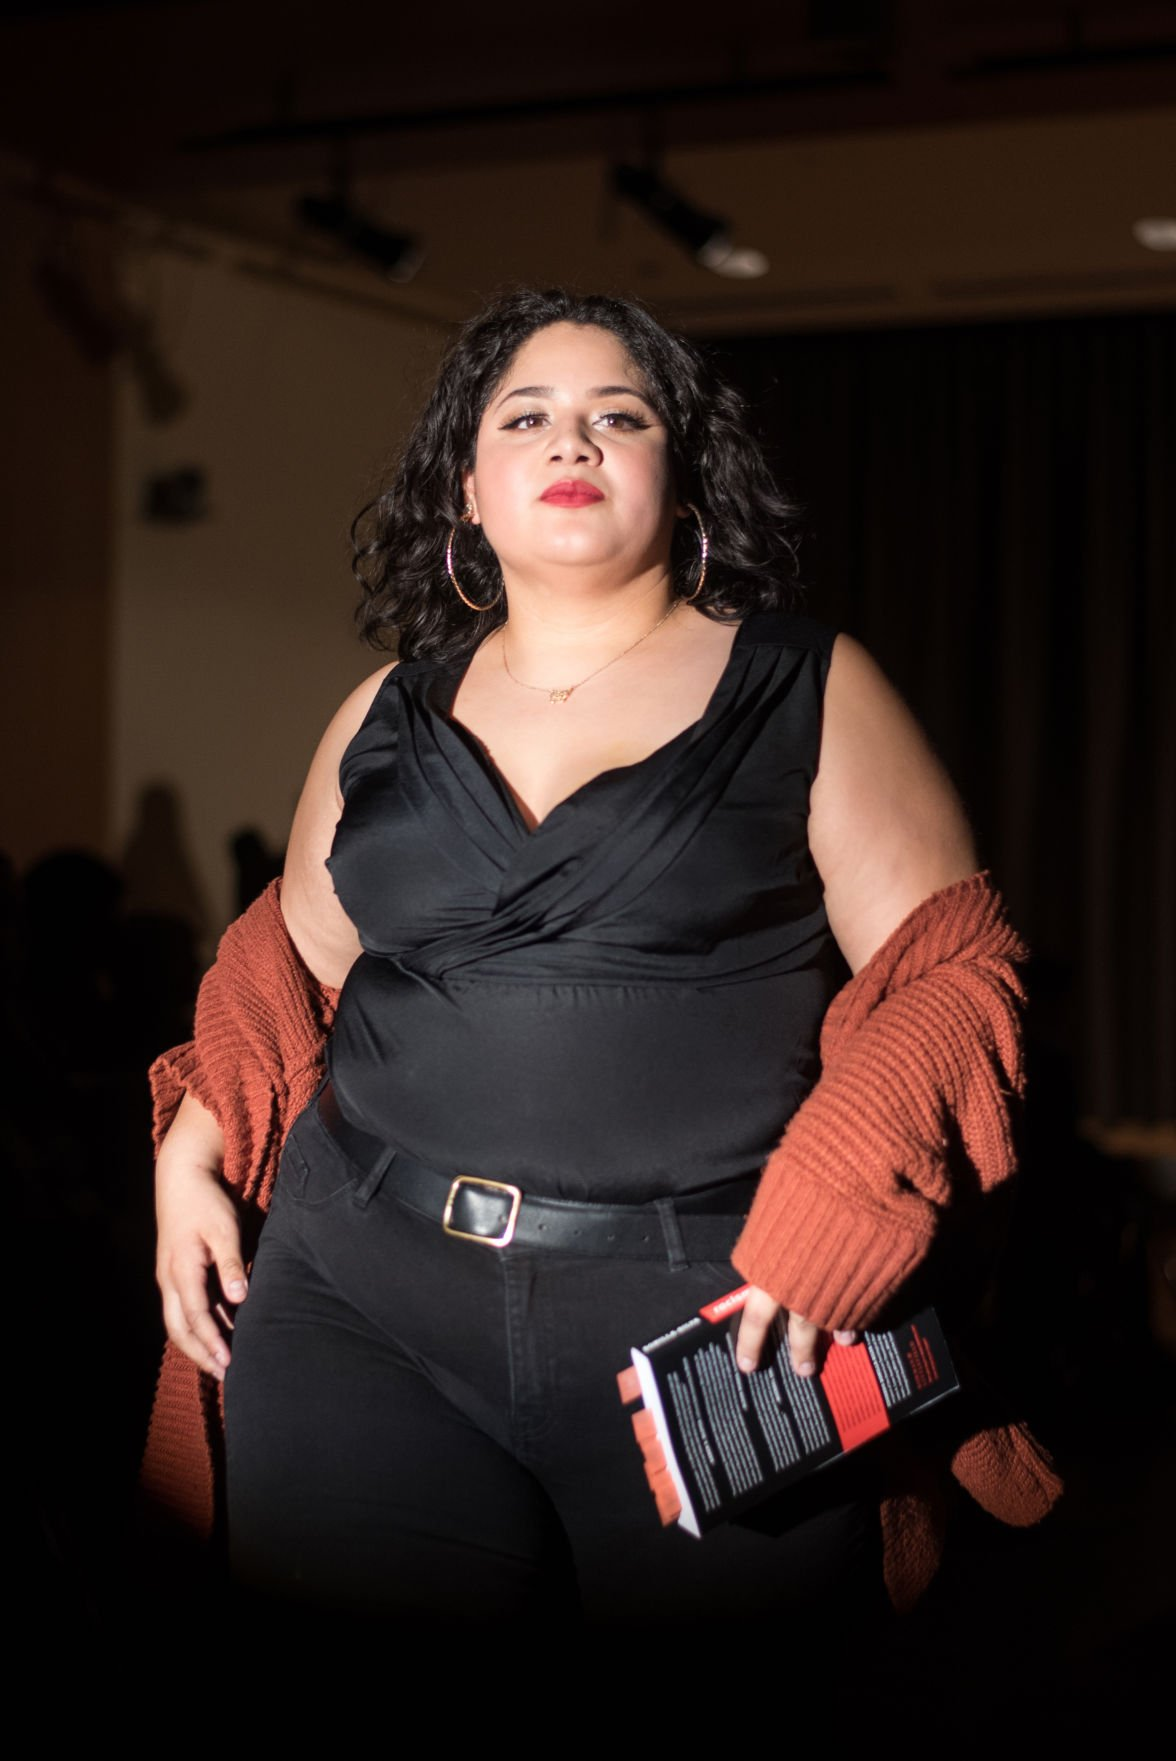 2019.02.23.EMG.MLW.BodyPositiveFashionShow-4.jpg